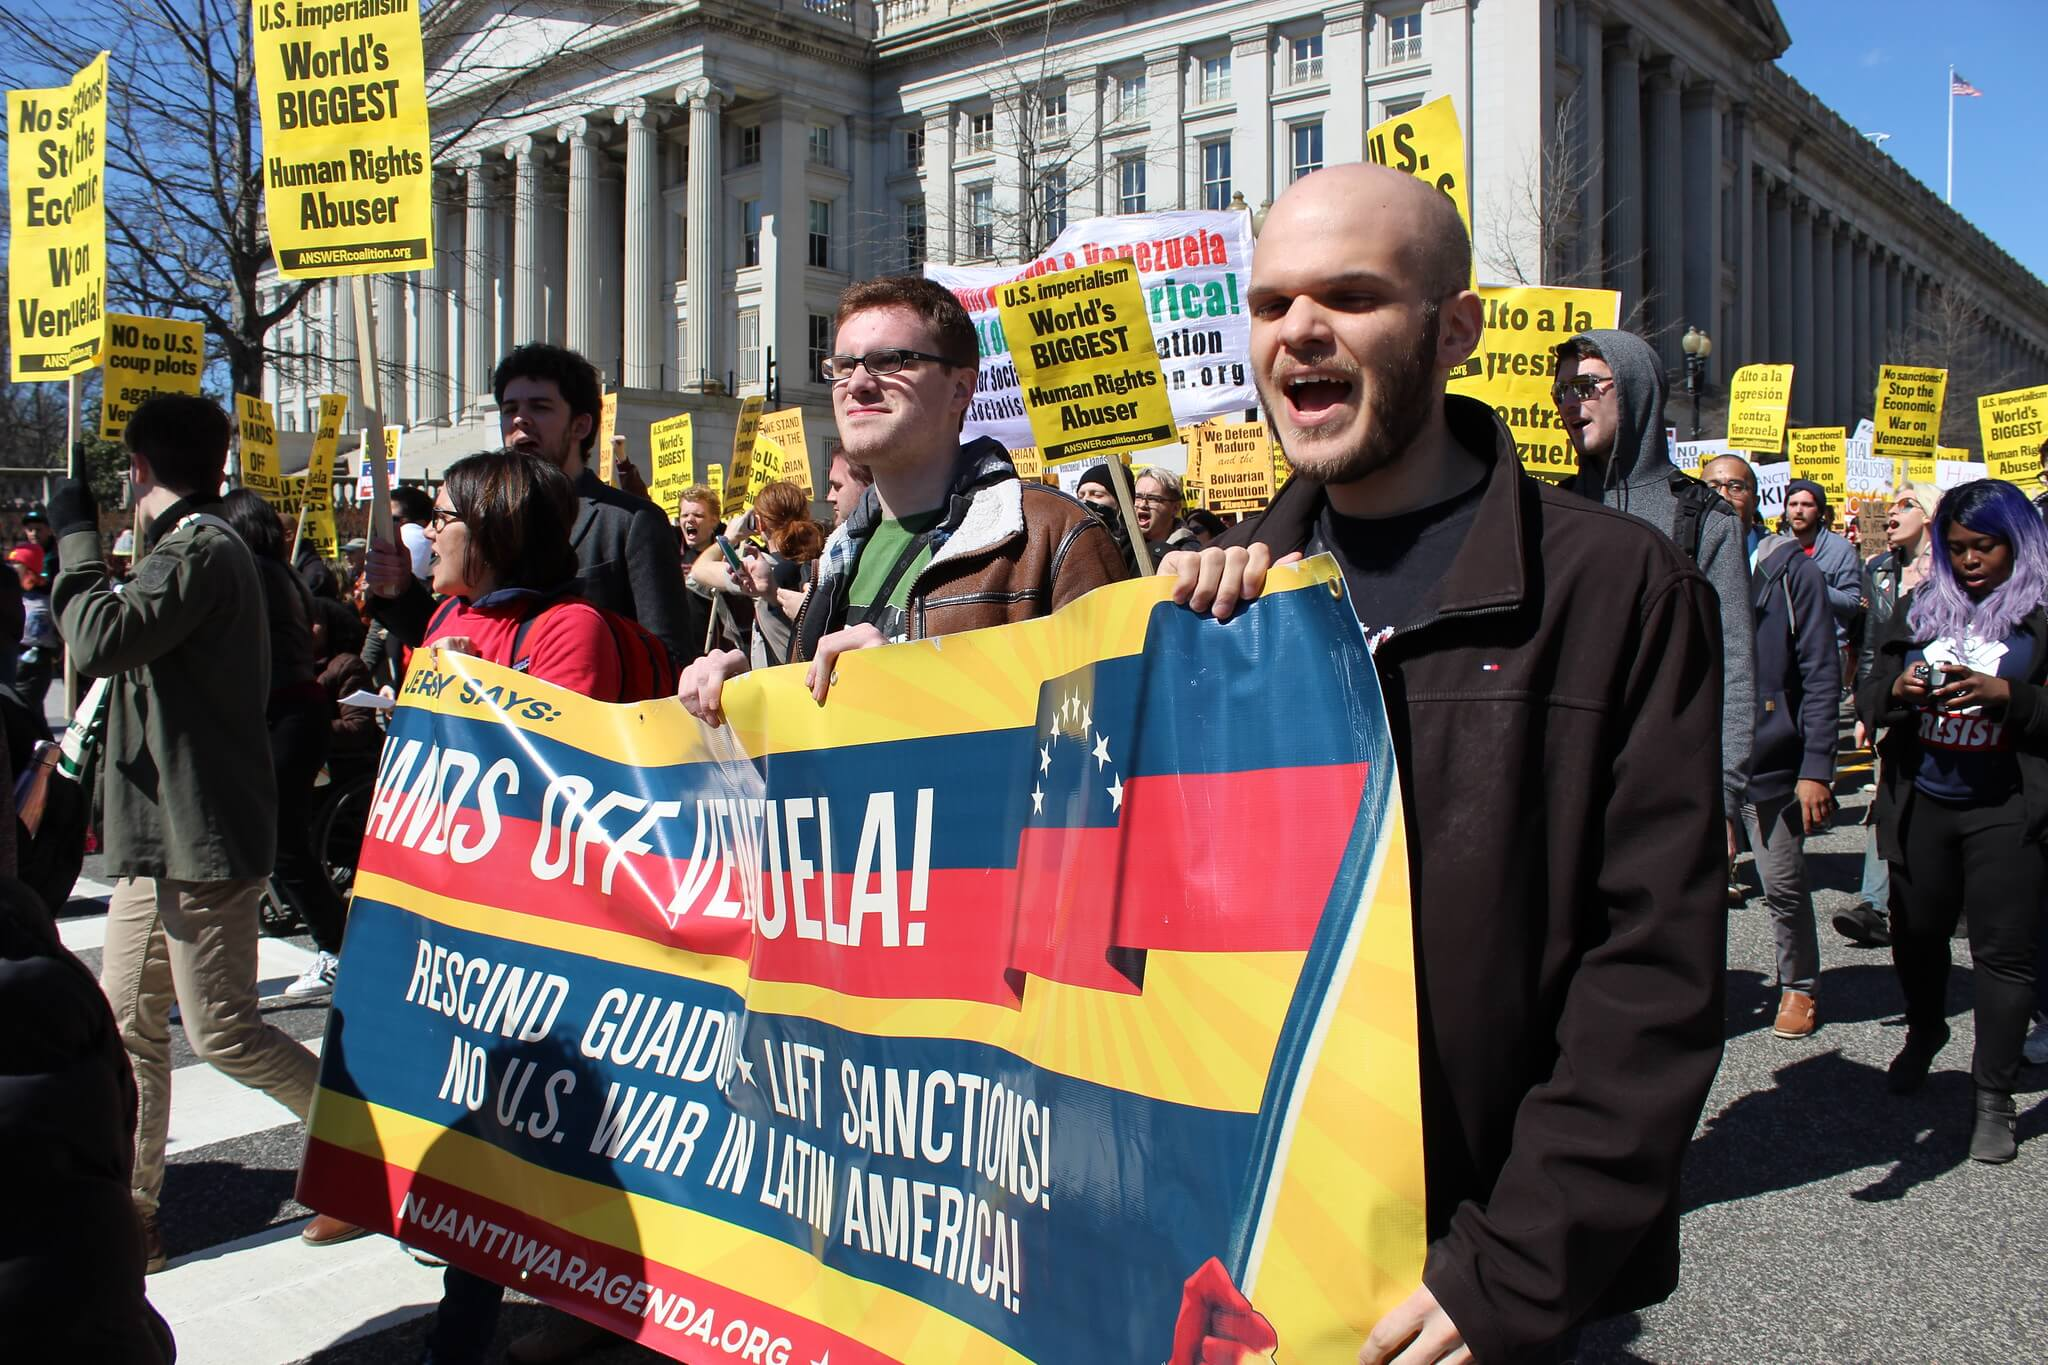 """Hands off venezuela"" demonstratie in de Verenigde Staten/ ©Flickr/Elvert Barnes"